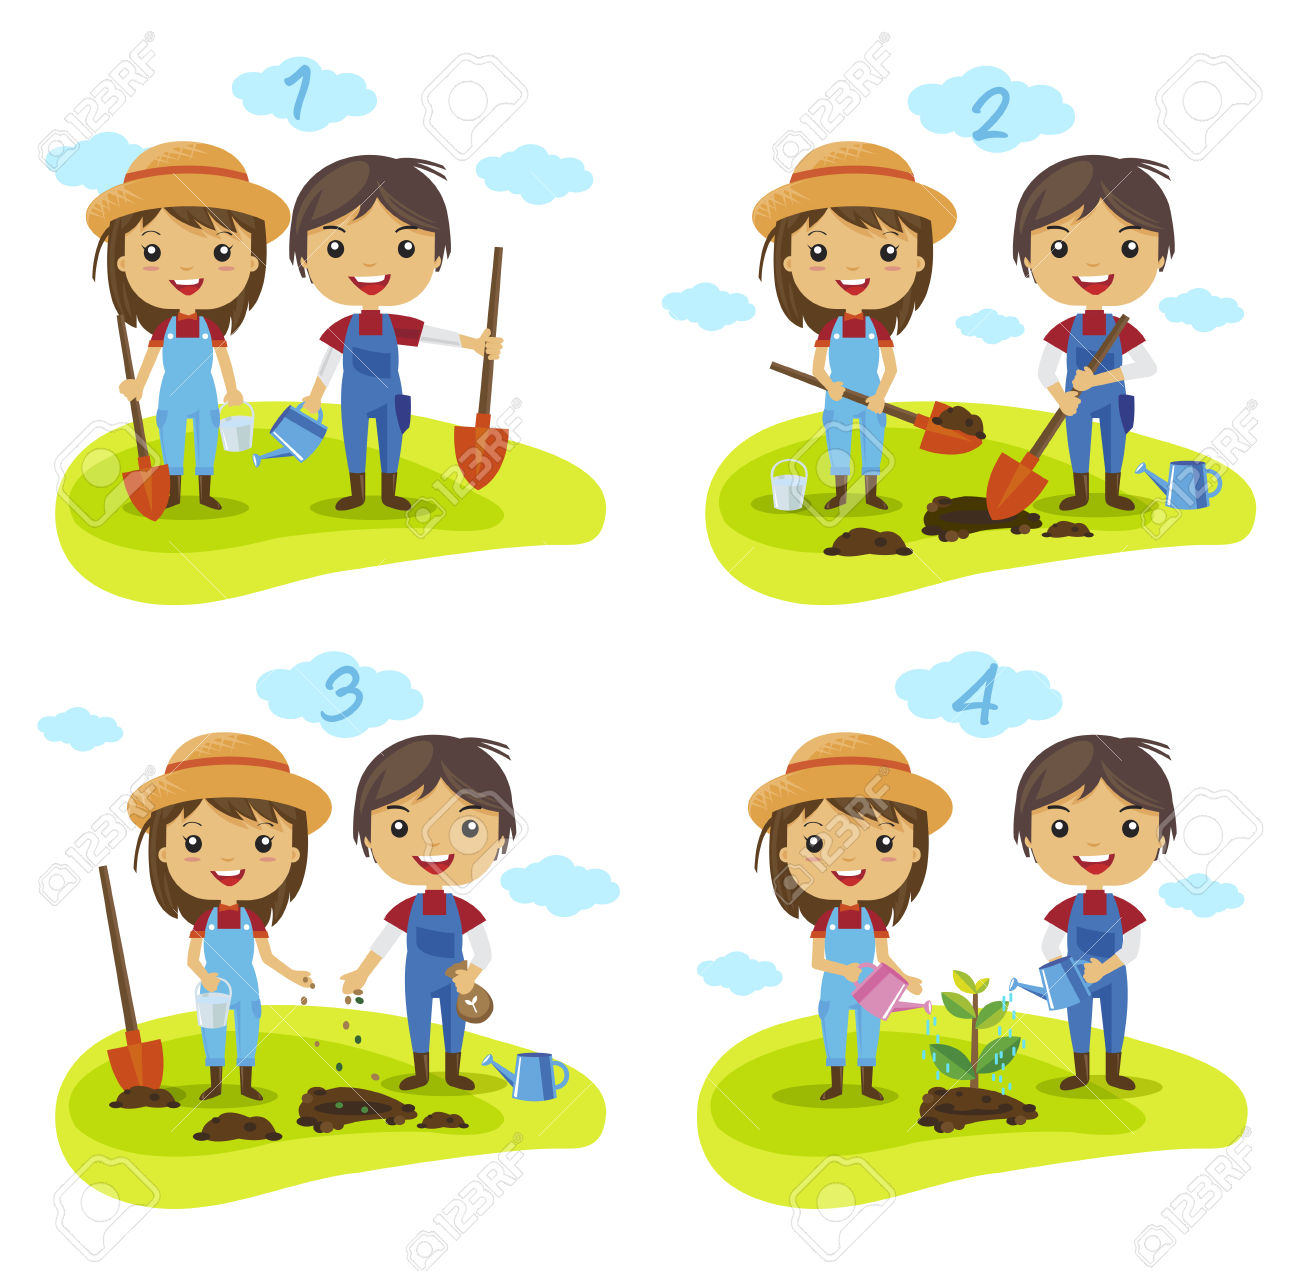 Cartoon Planting Tree Process, How To Grow A Tree, Gardening.